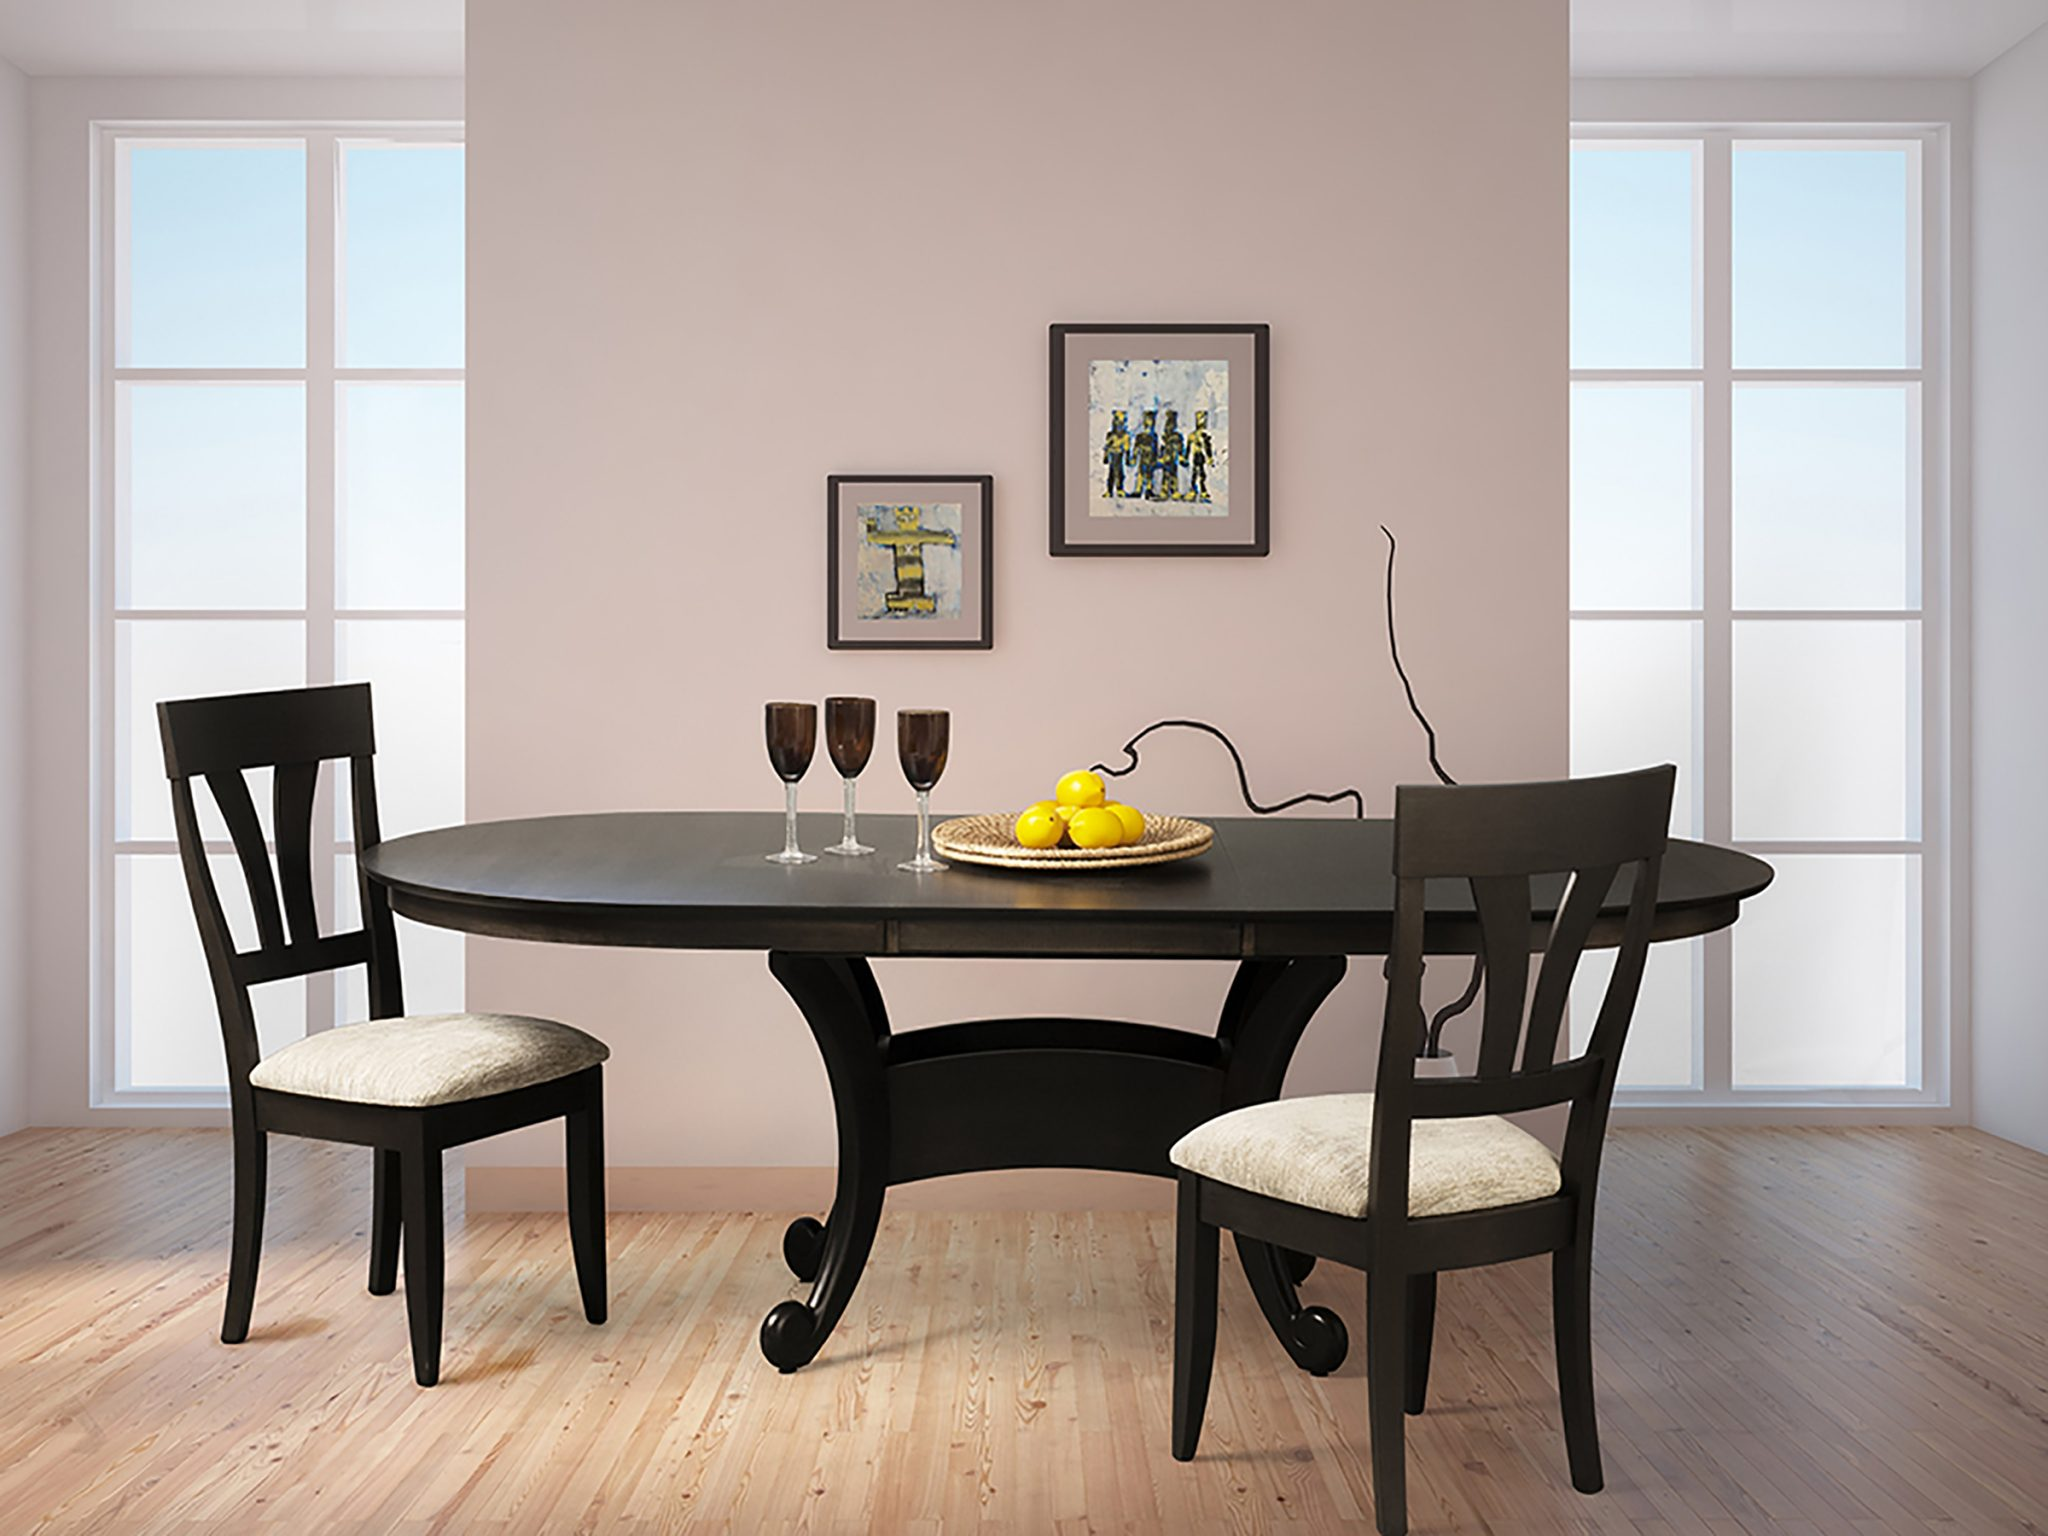 Neptune Deluxe Dining Table – Saloom Furniture pany